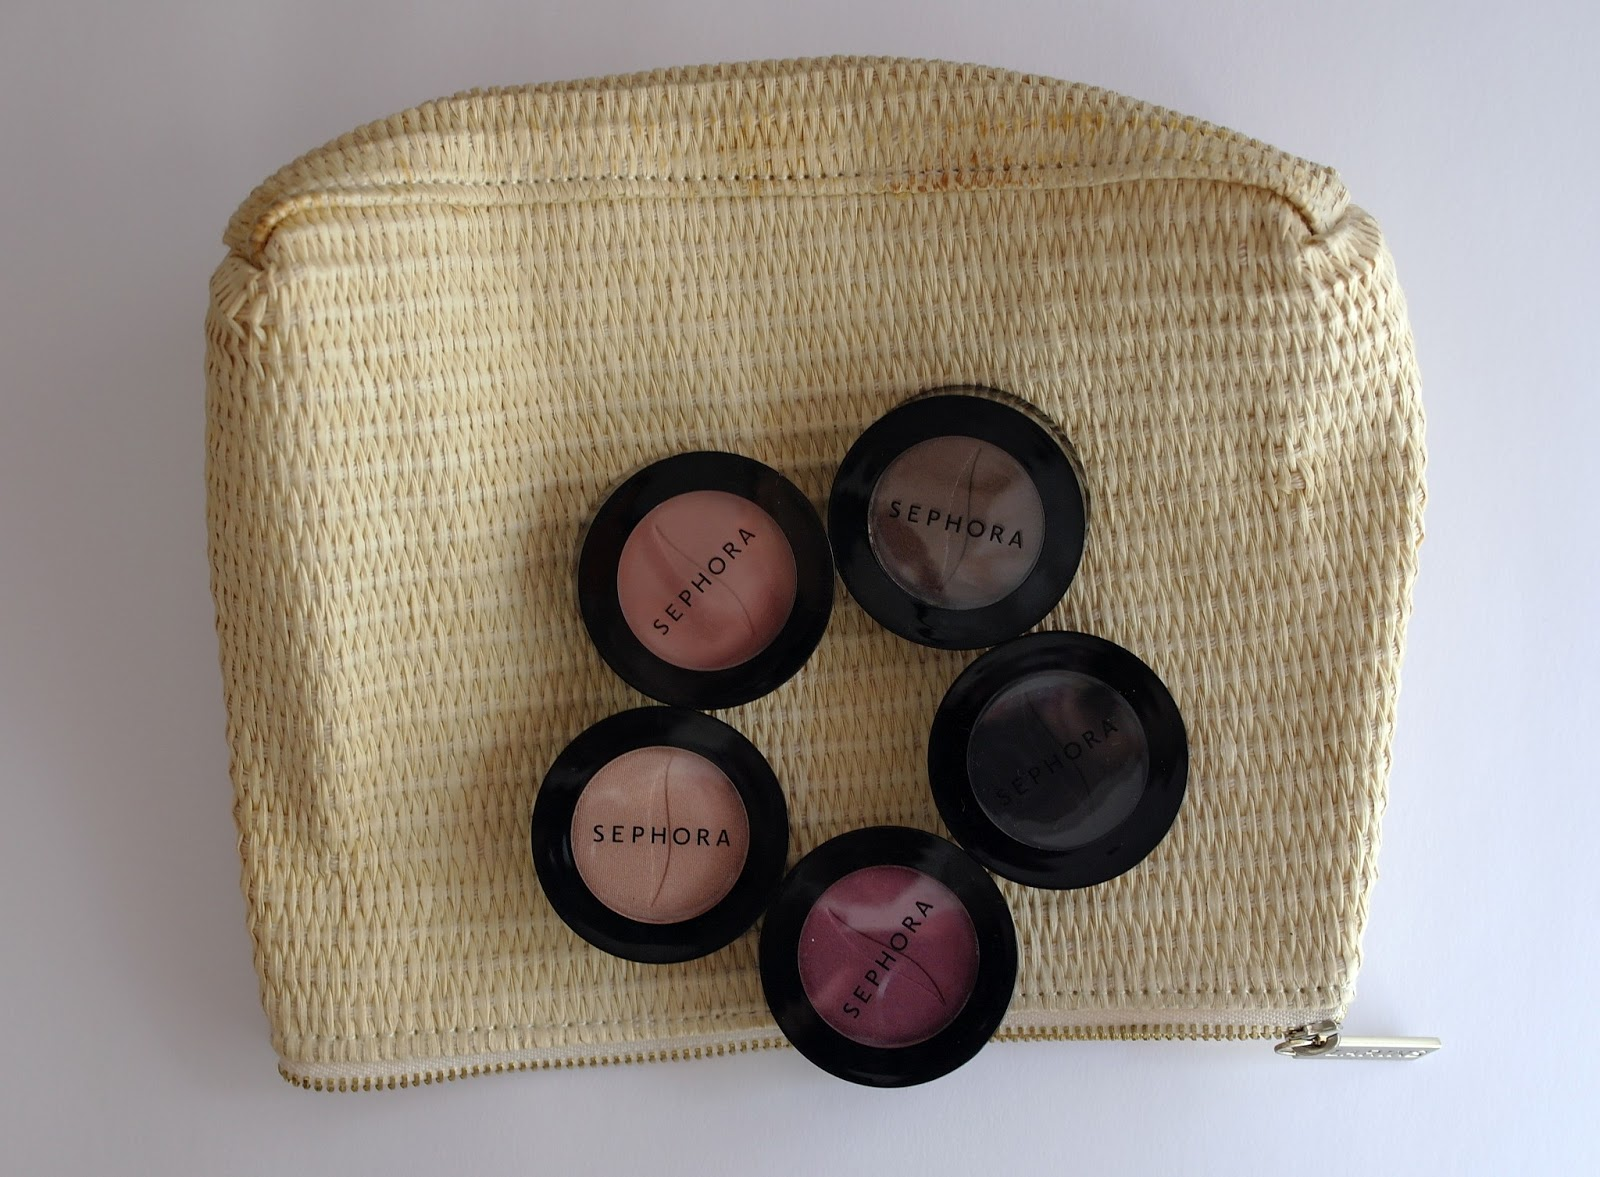 GIVEAWAY: Blog's 1st Anniversary II - Sephora Eyeshadow Set!